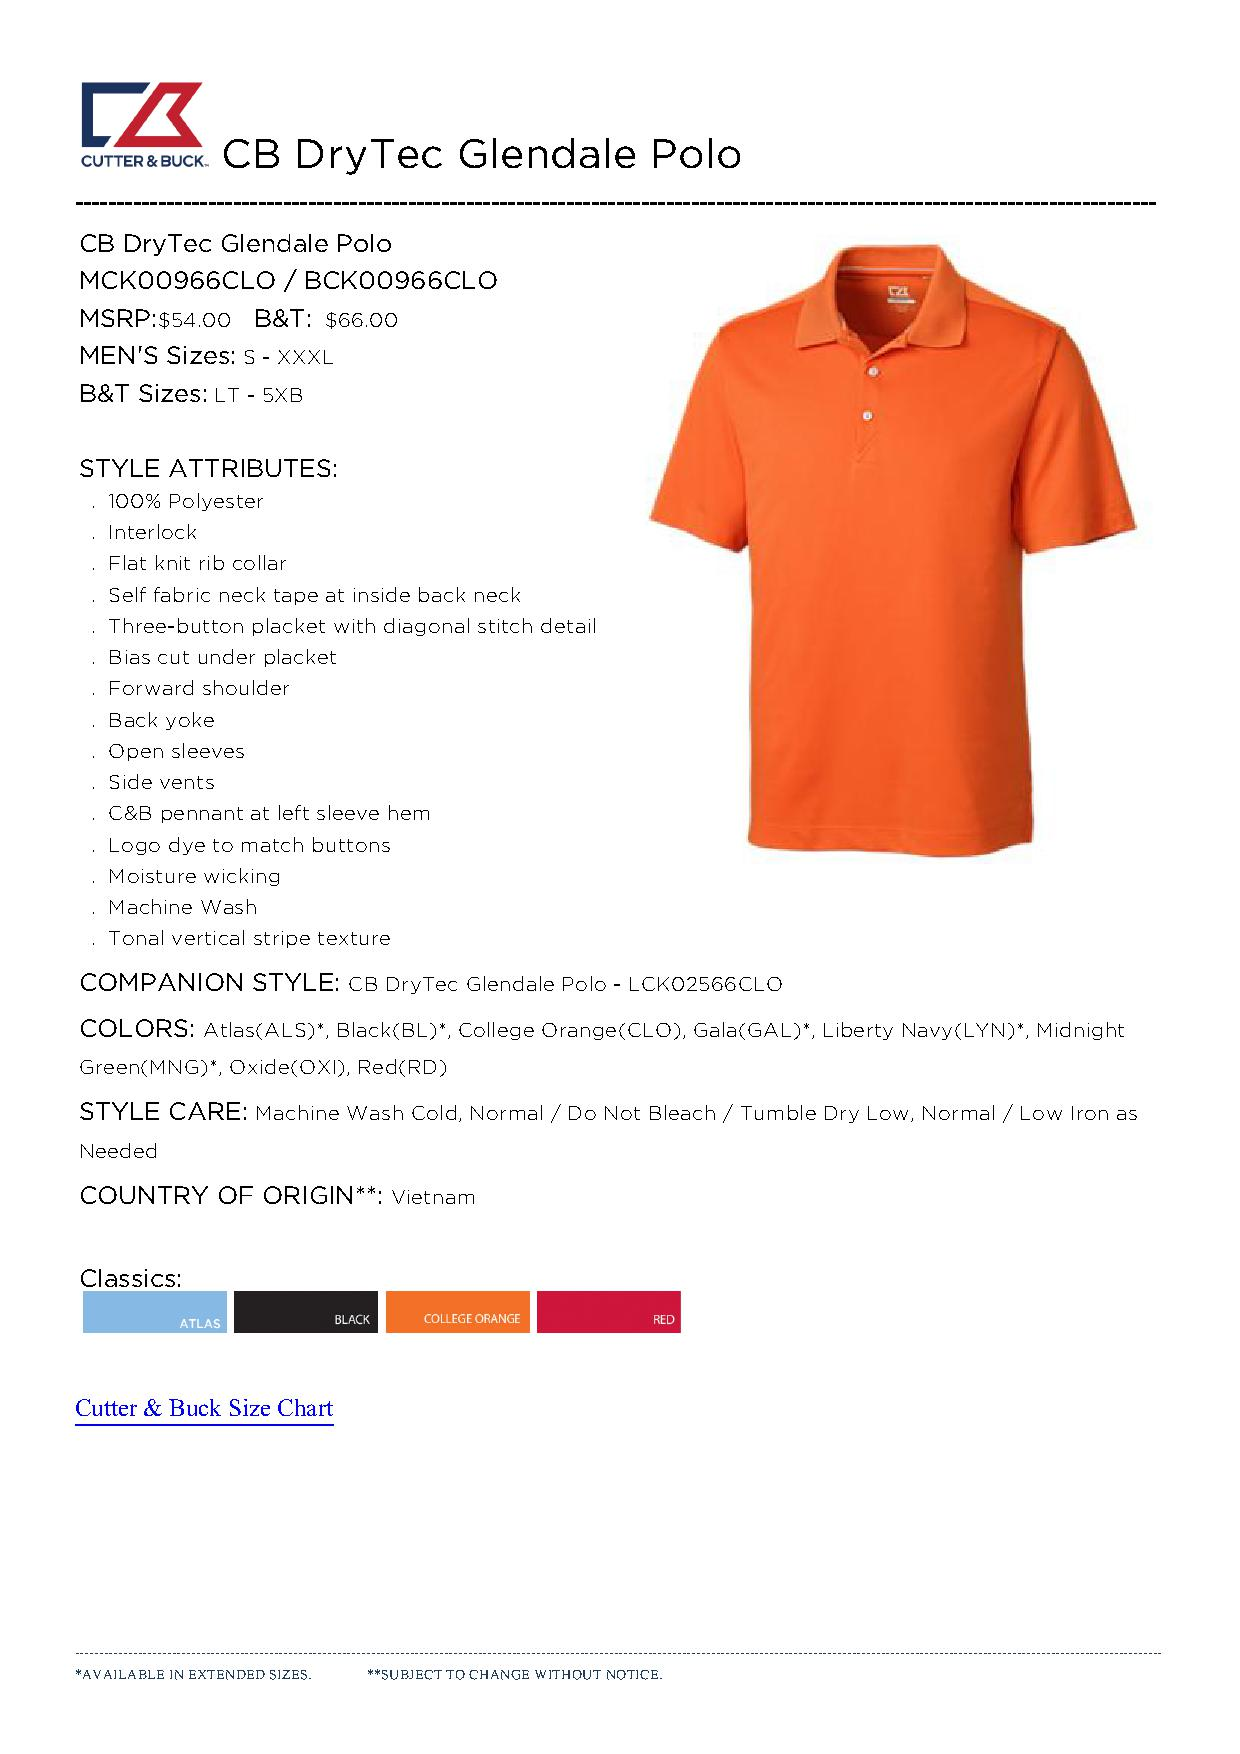 Cutter buck mck00966 men 39 s cb drytec glendale polo 27 for Cutter buck polo shirt size chart